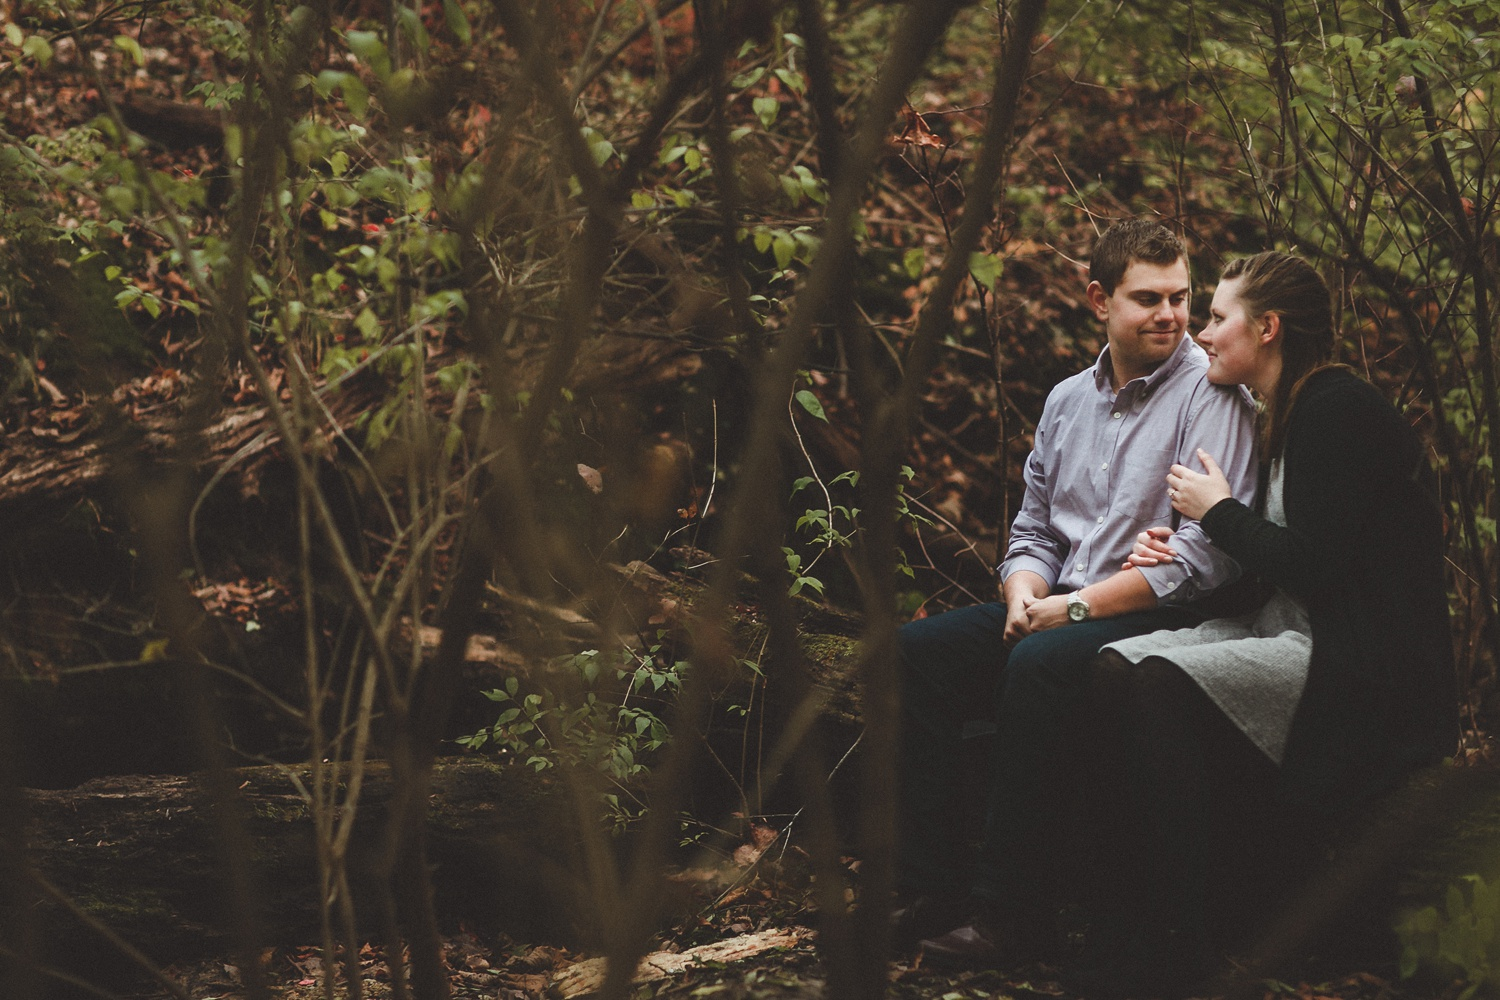 rock_cut_state_park_rockford_IL_engagement_photographer_0021.jpg